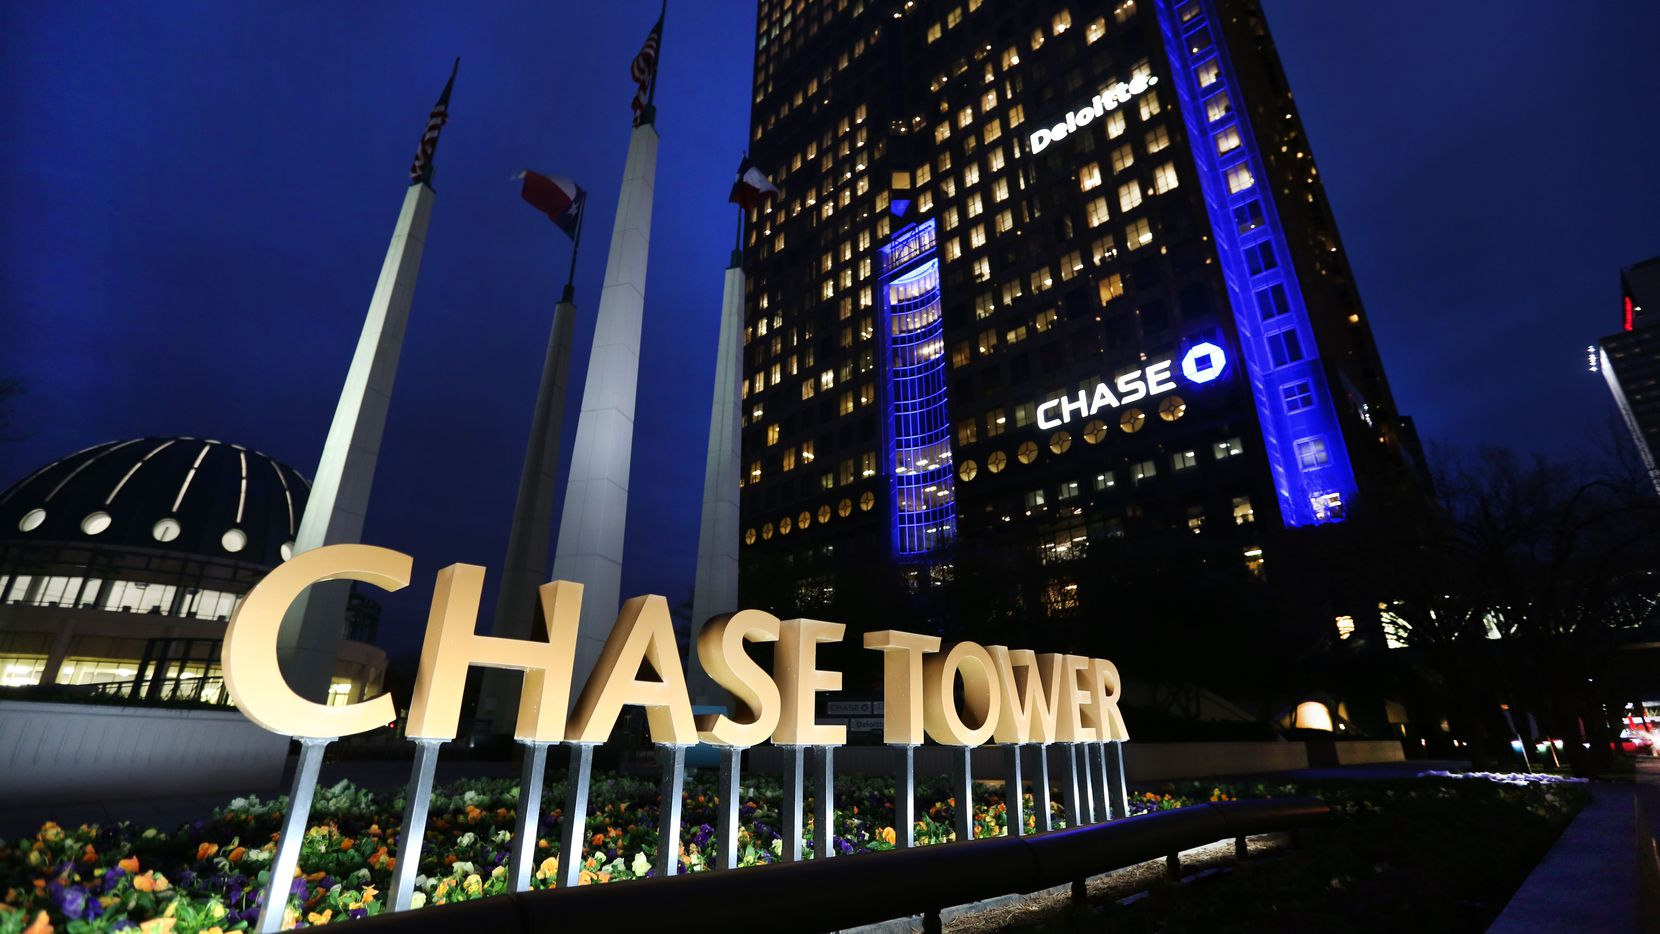 Greenberg Traurig is expanding into another floor at Chase Tower in downtown Dallas.